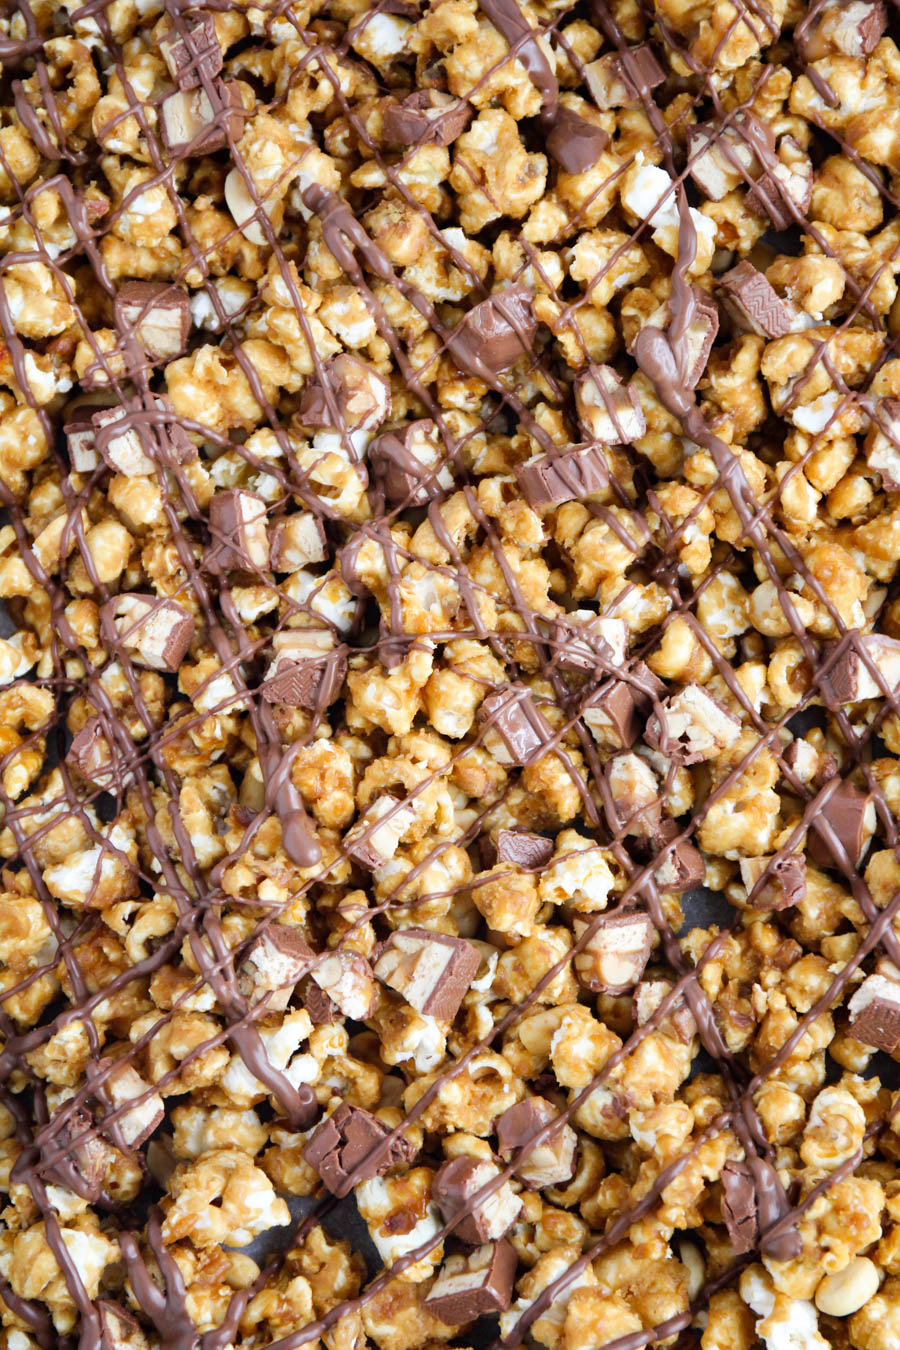 Snickers caramel popcorn - a delicious mix of crunchy caramel corn, peanuts, Snickers pieces, and chocolate. So addicting and delicious!